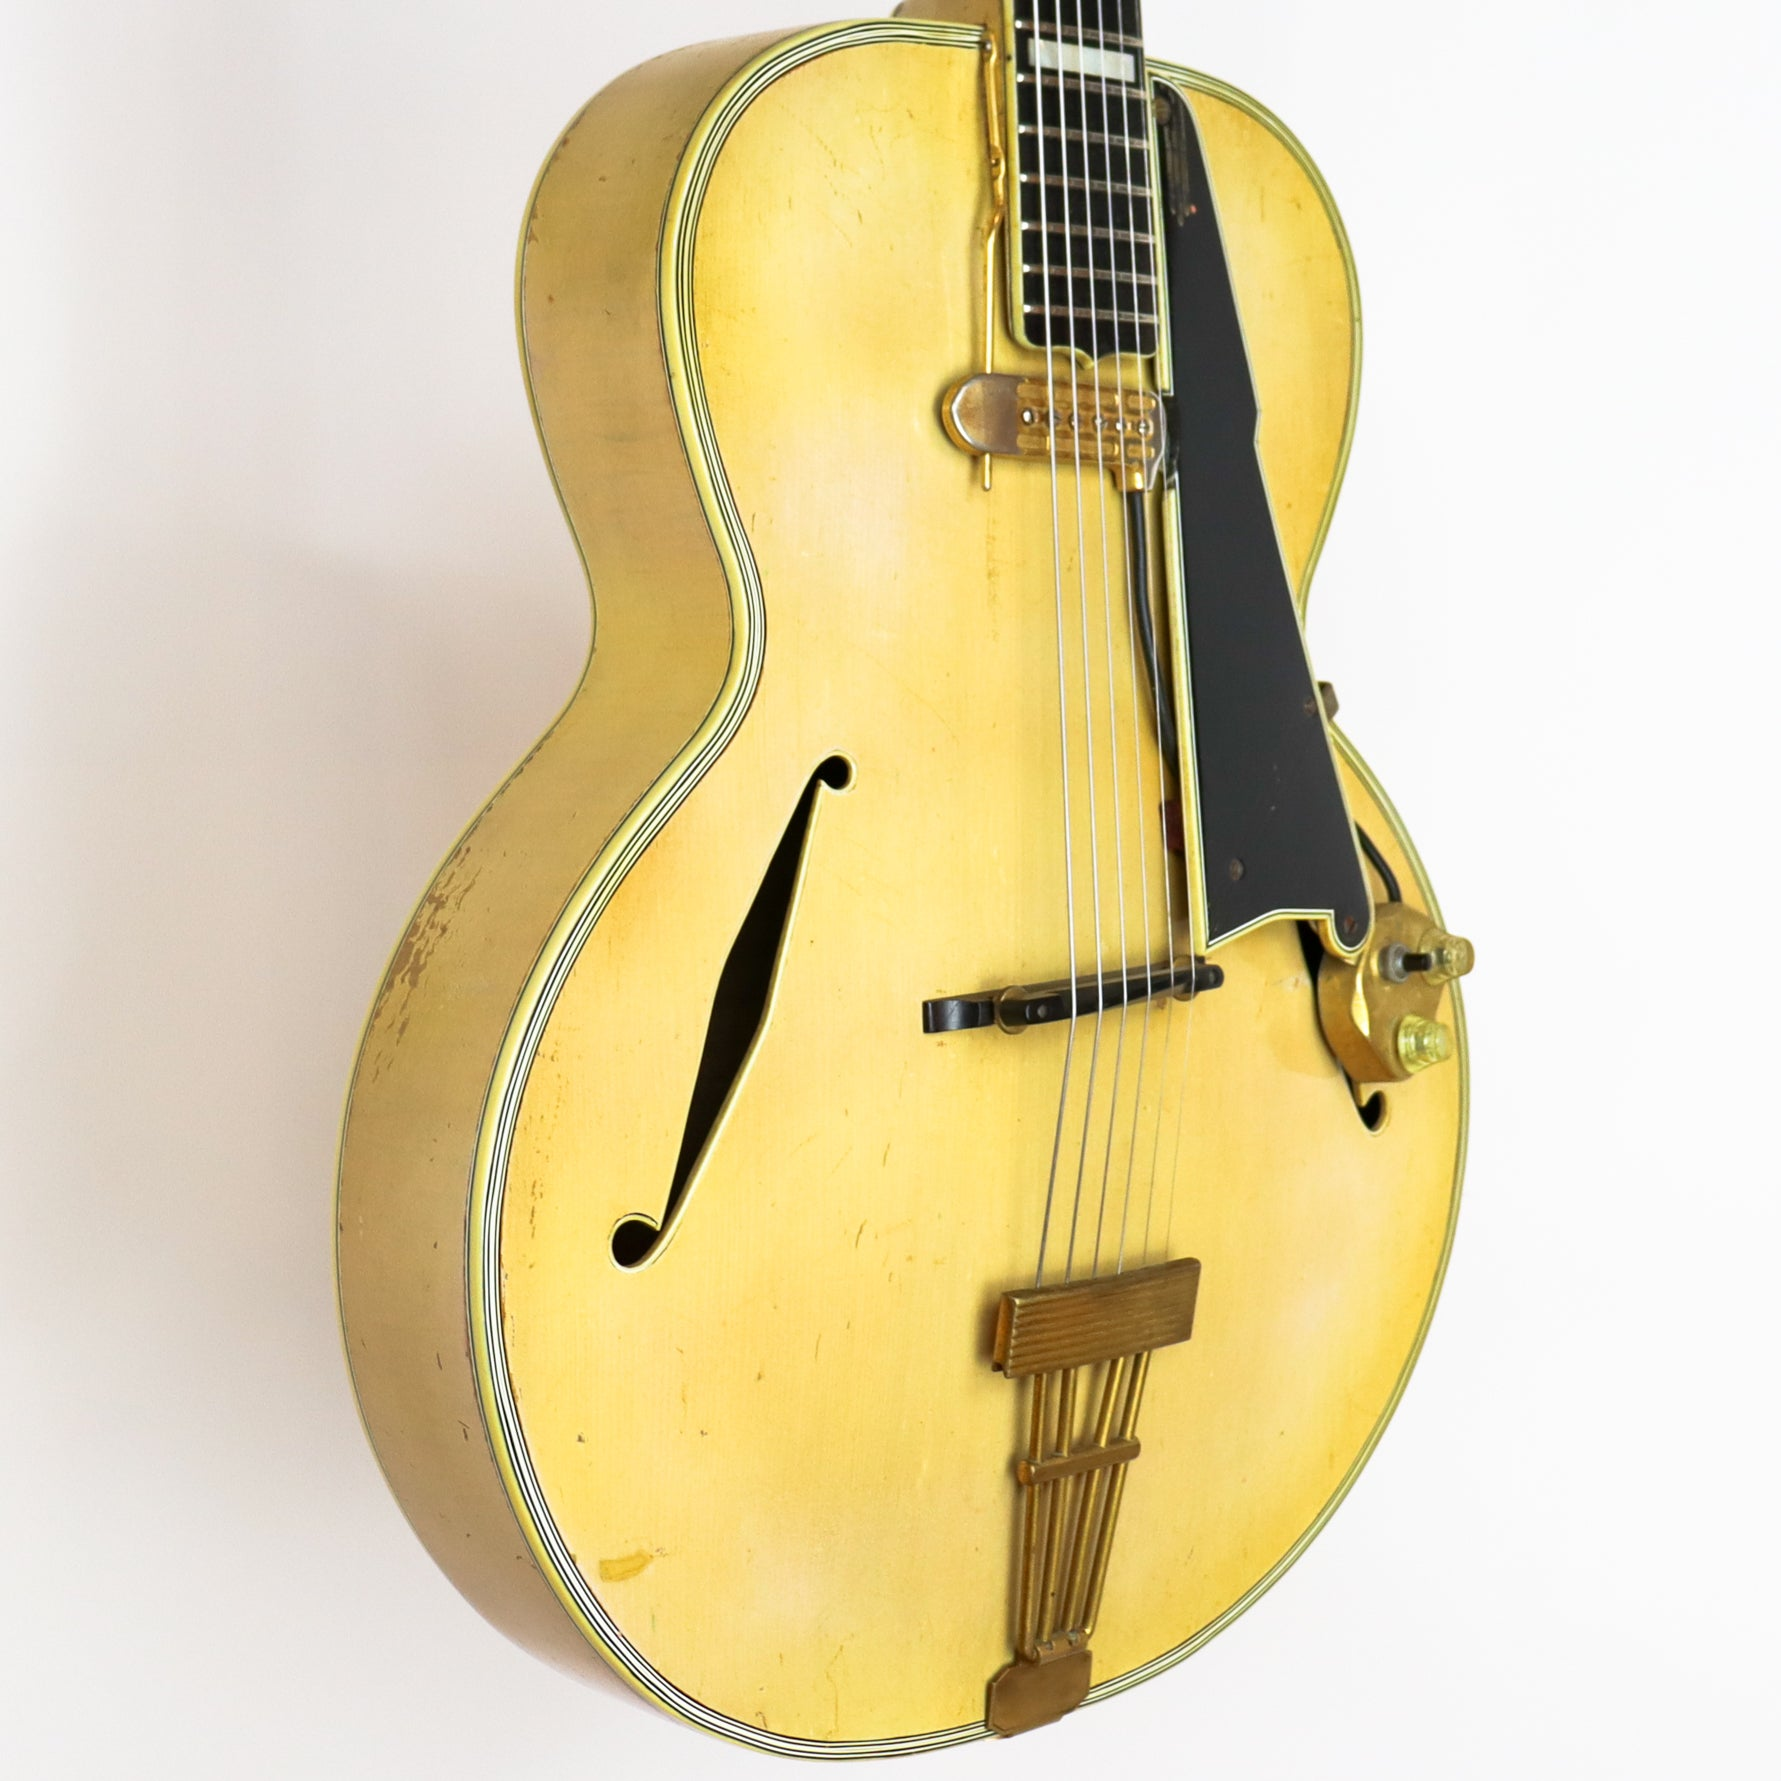 D'Angelico 1935 Exel made for Tony Mottola SN# 1123 with Hardshell Case